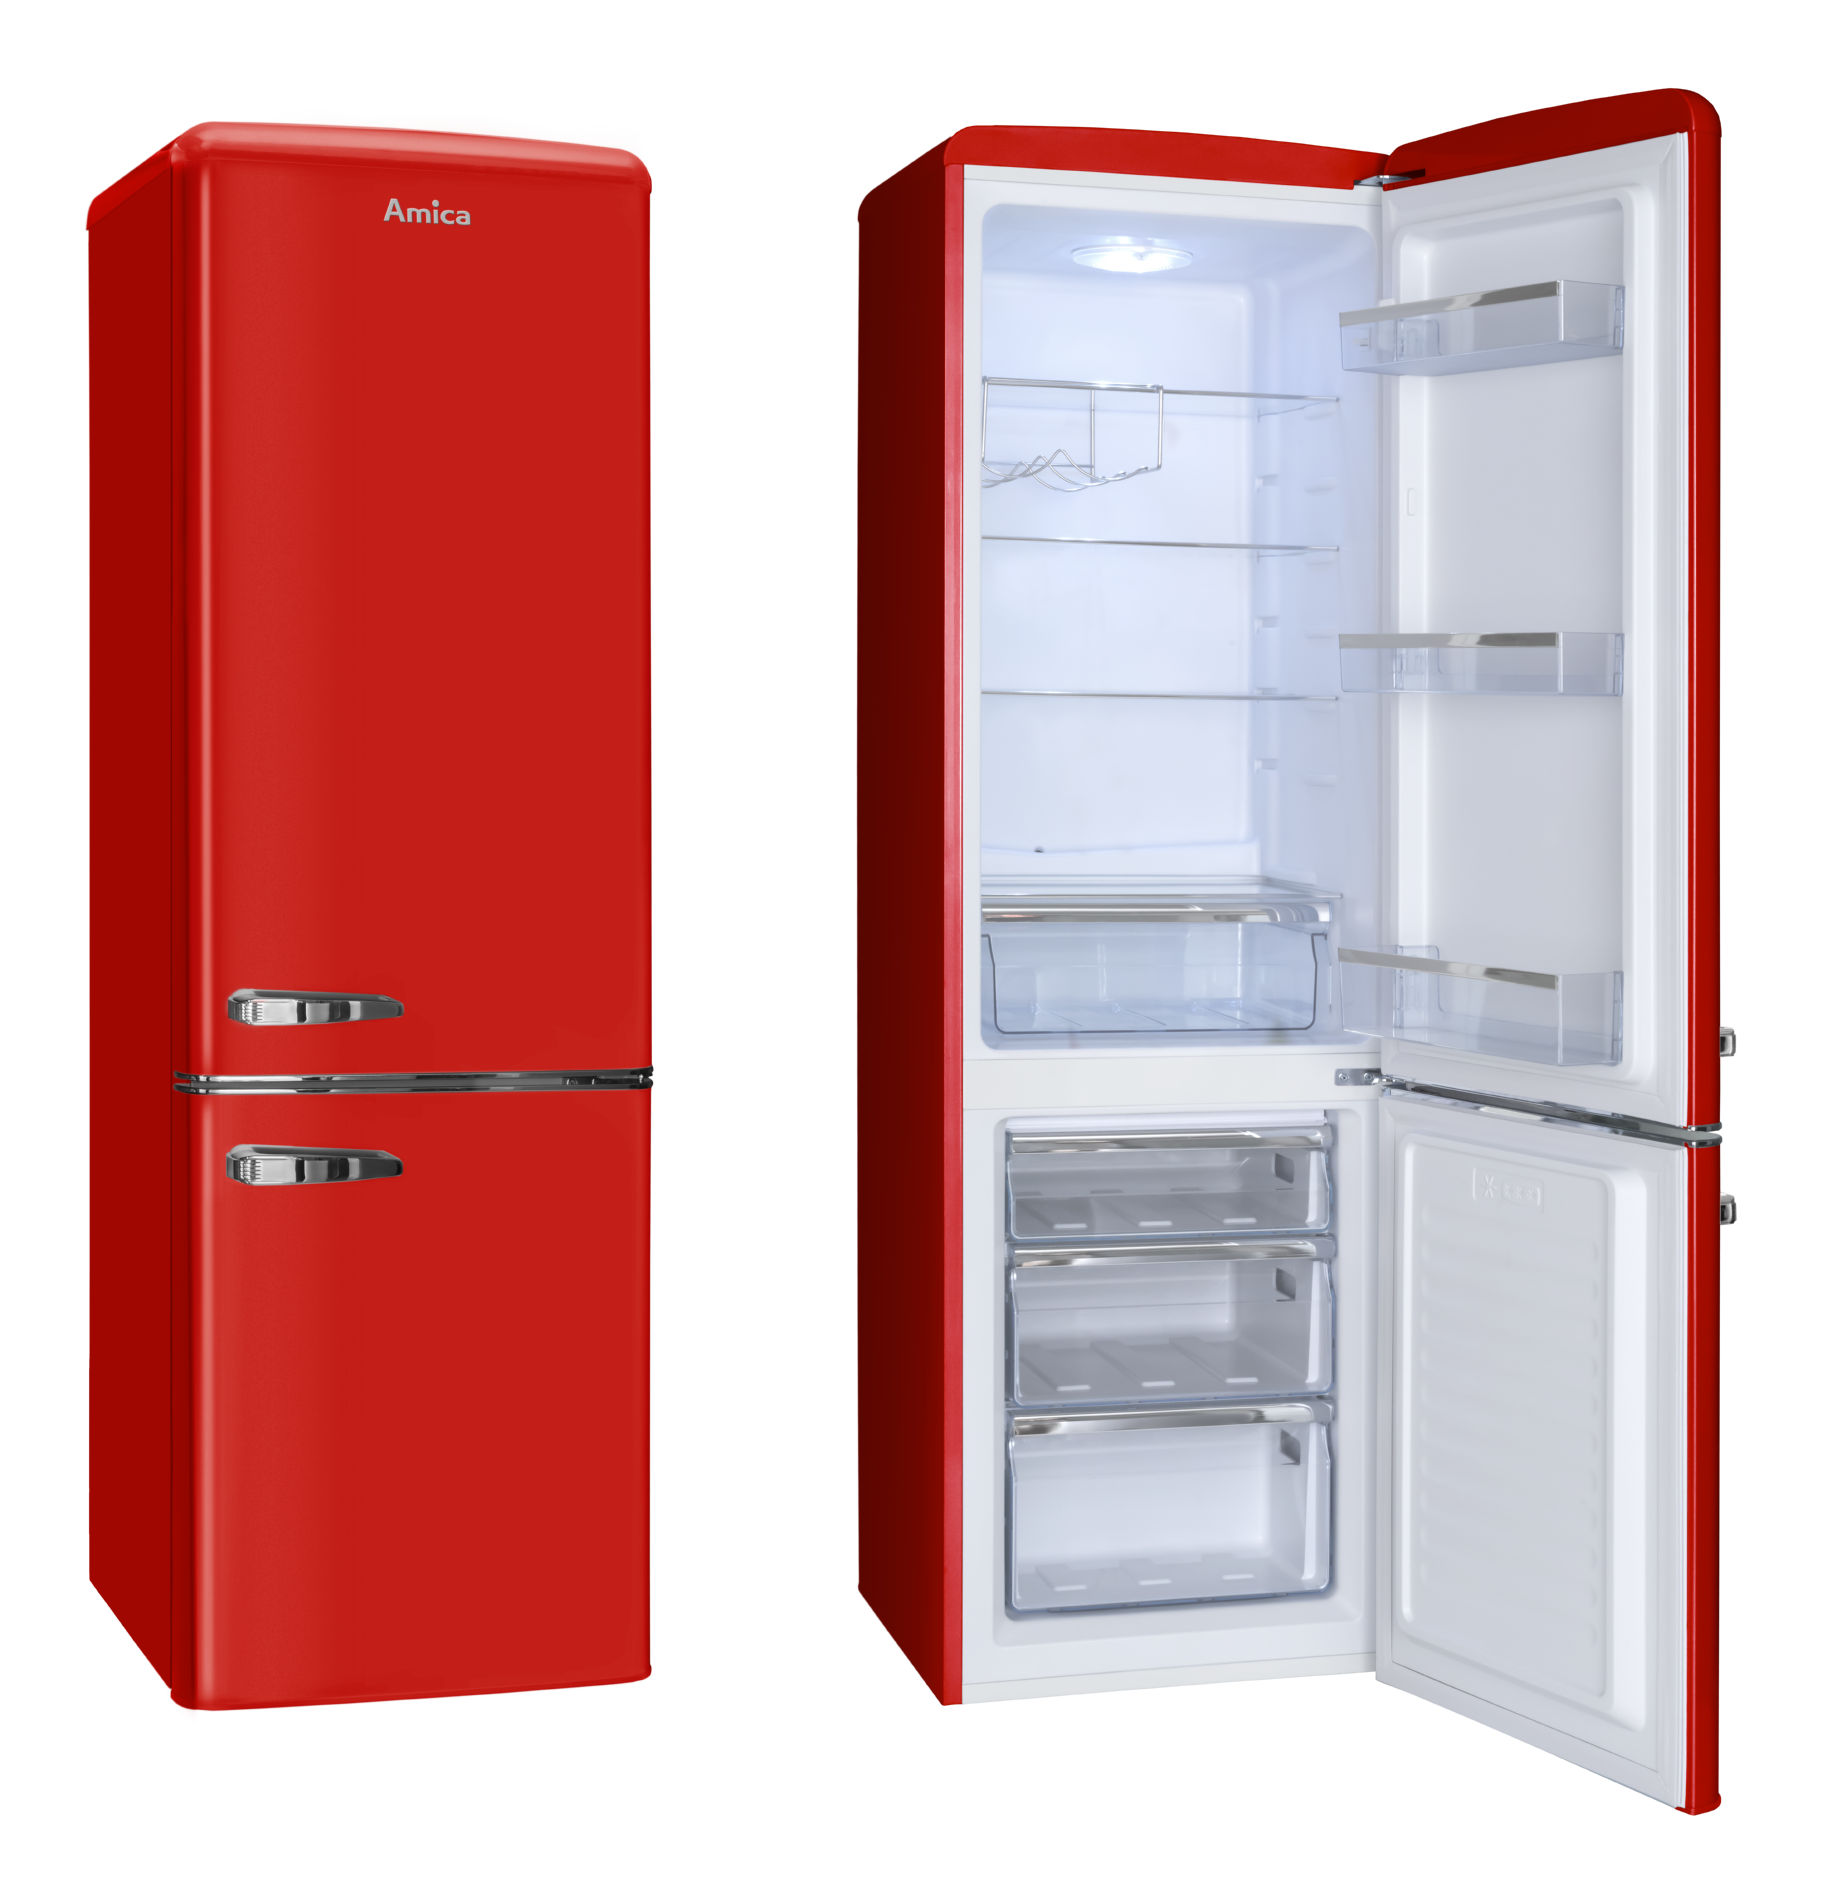 Which is better: Automatic defrosting system or No Frost system what refrigerator to choose